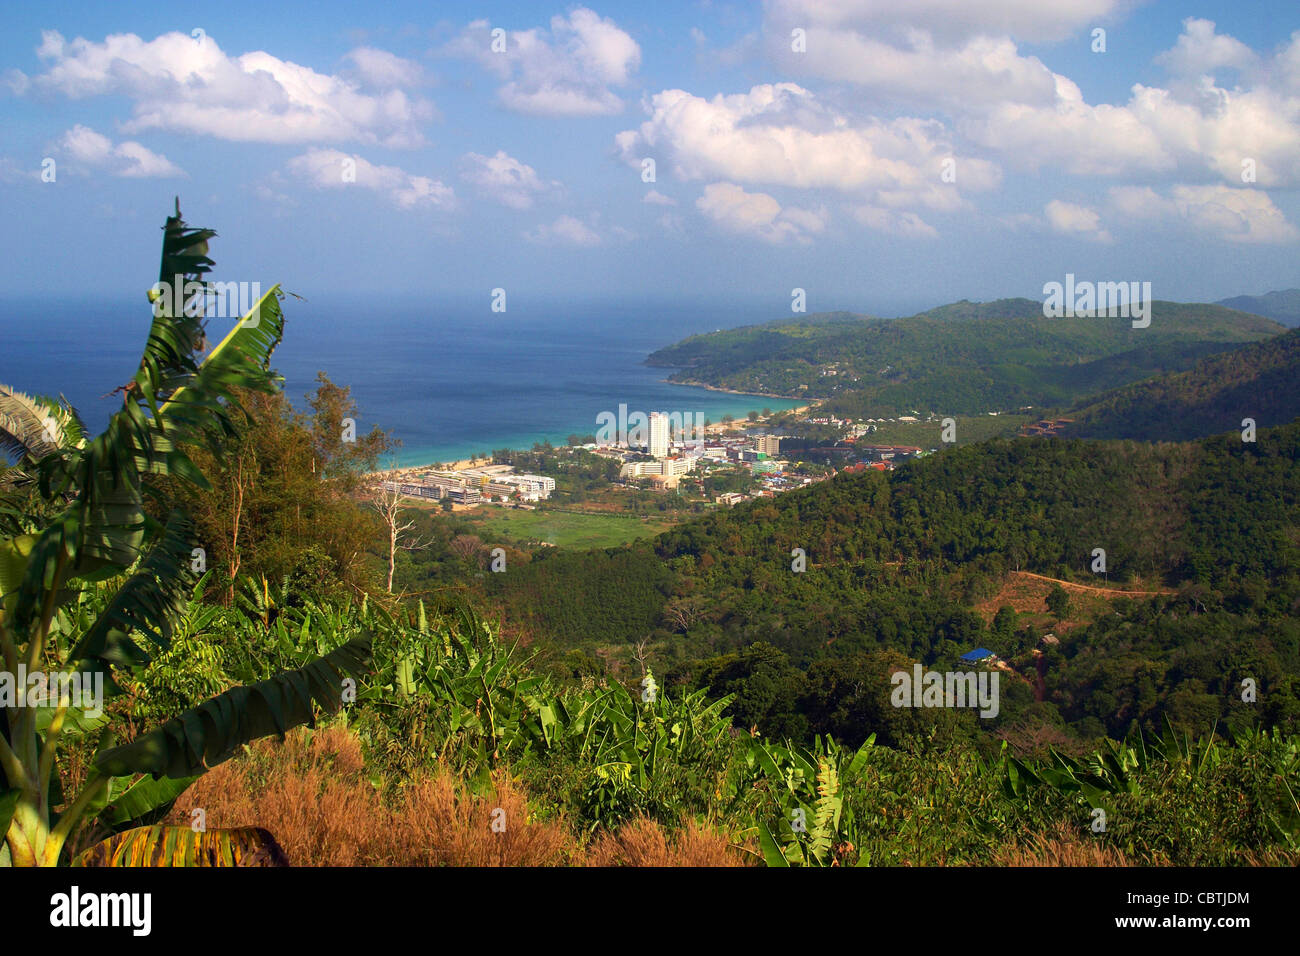 General view over the beach resort of Karon on the Phuket coast - Stock Image